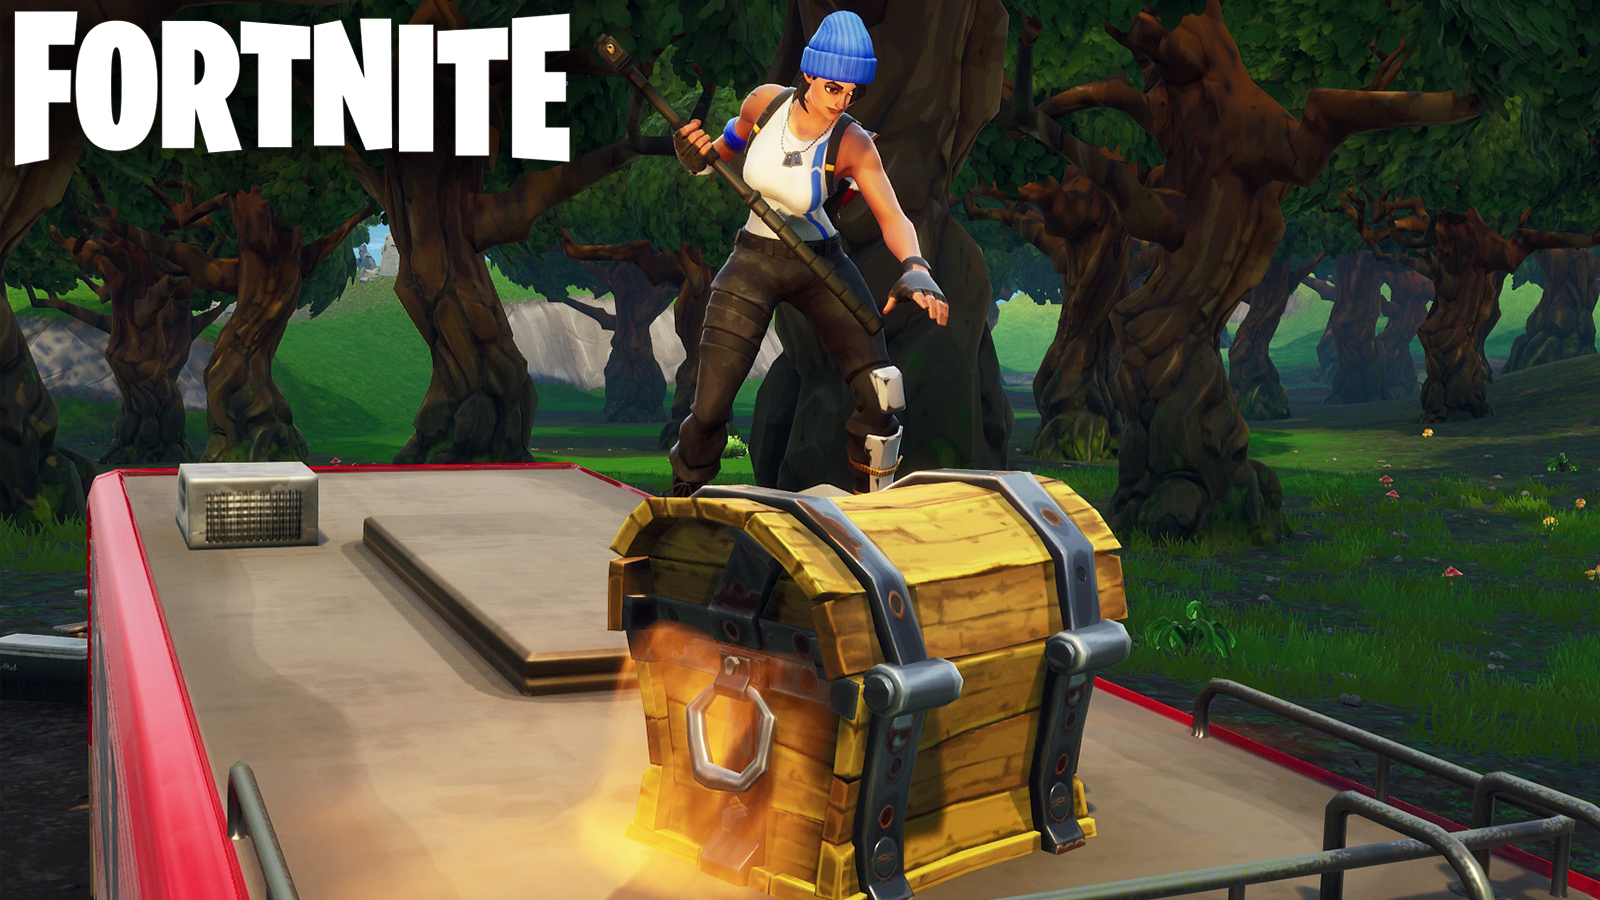 Fortnite character opening a chest.